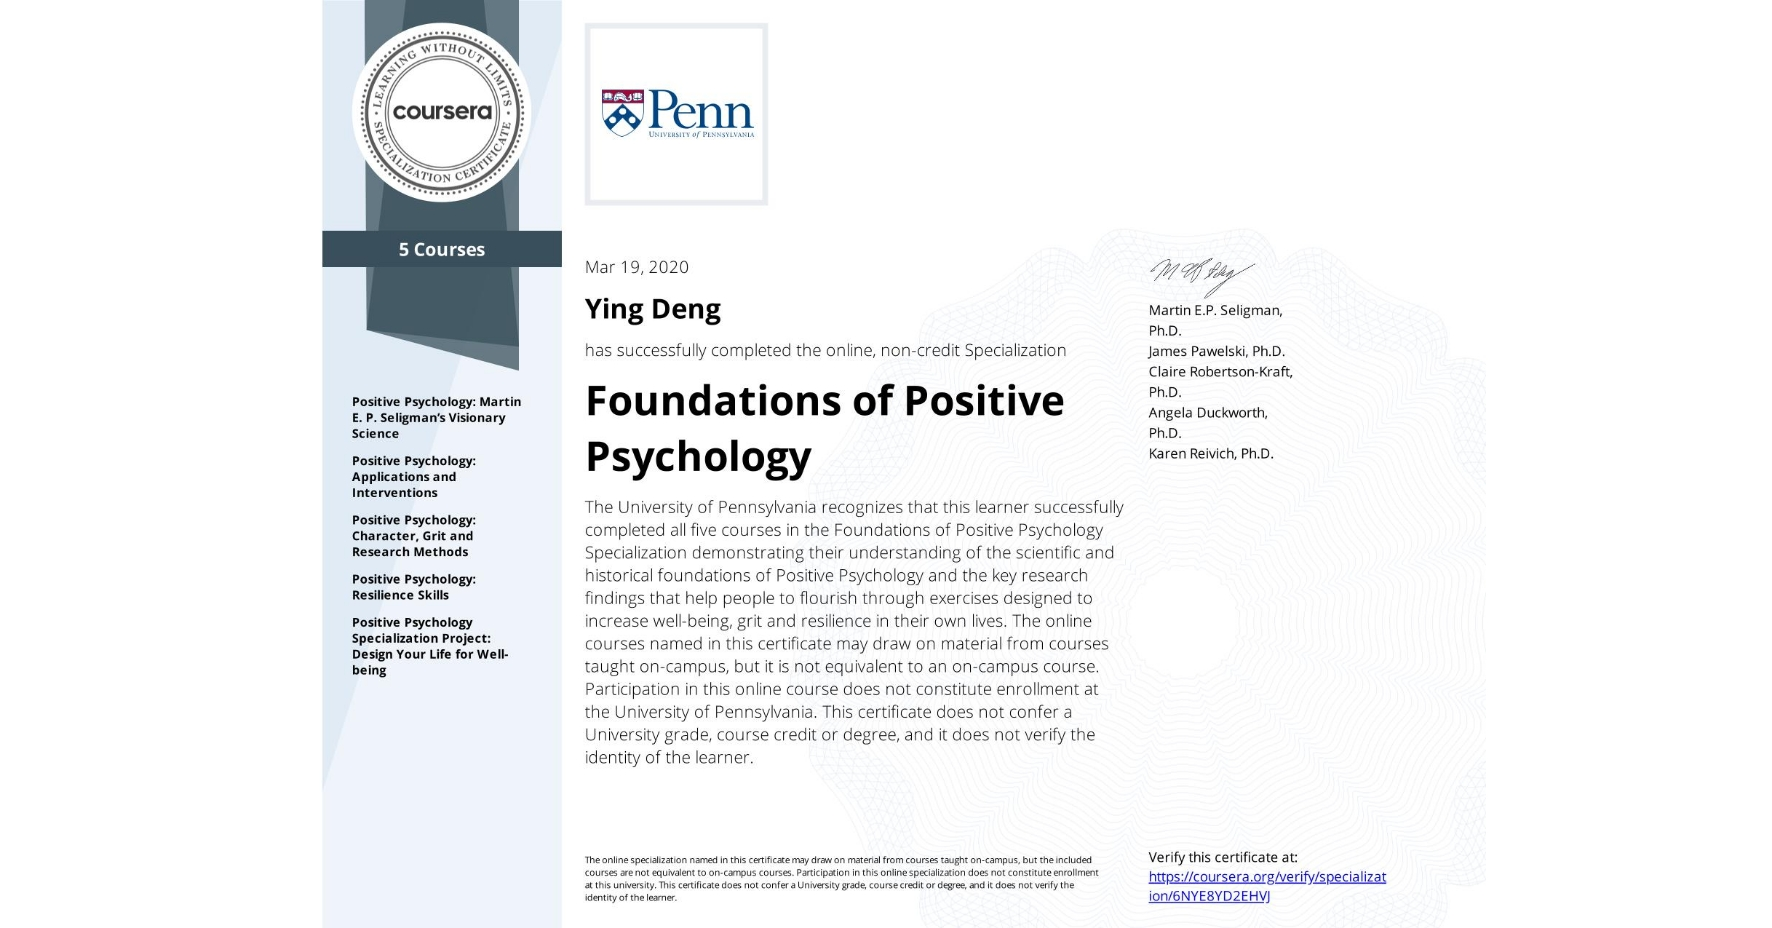 View certificate for Ying Deng, Foundations of Positive Psychology , offered through Coursera. The University of Pennsylvania recognizes that this learner successfully completed all five courses in the Foundations of Positive Psychology Specialization demonstrating their understanding of the scientific and historical foundations of Positive Psychology and the key research findings that help people to flourish through exercises designed to increase well-being, grit and resilience in their own lives. The online courses named in this certificate may draw on material from courses taught on-campus, but it is not equivalent to an on-campus course.  Participation in this online course does not constitute enrollment at the University of Pennsylvania. This certificate does not confer a University grade, course credit or degree, and it does not verify the identity of the learner.